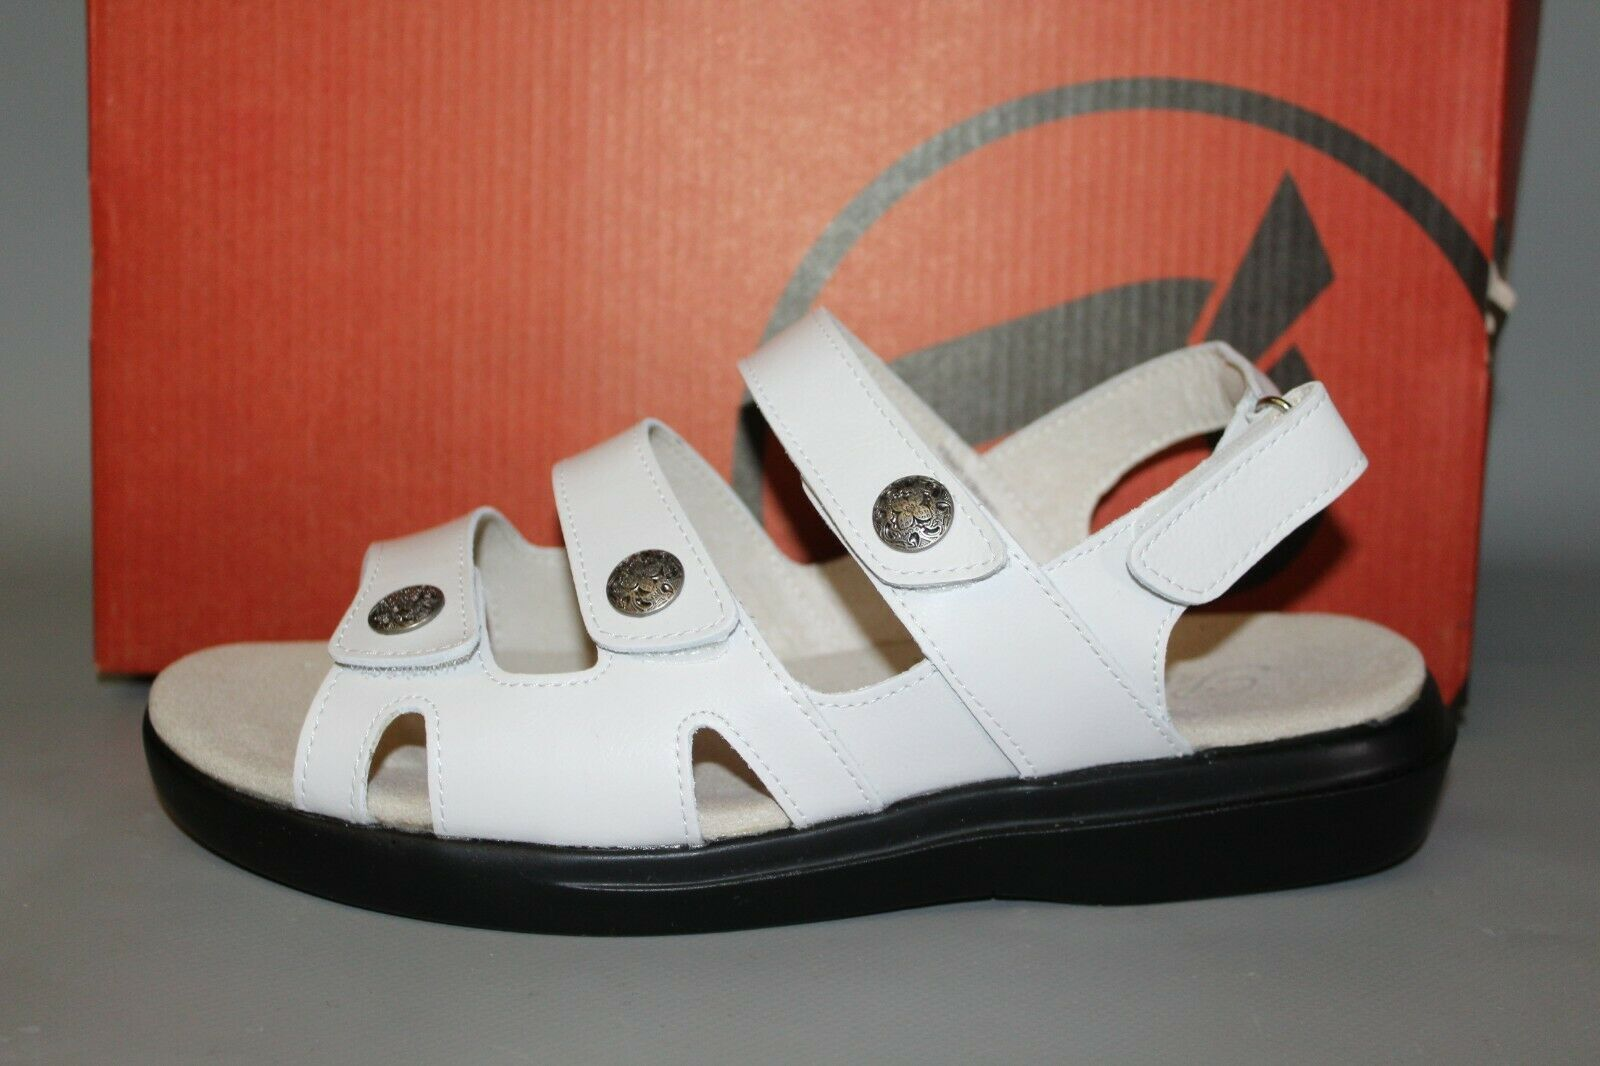 NEW Women's Propet W0028 Bahama White Leather Casual Sandals